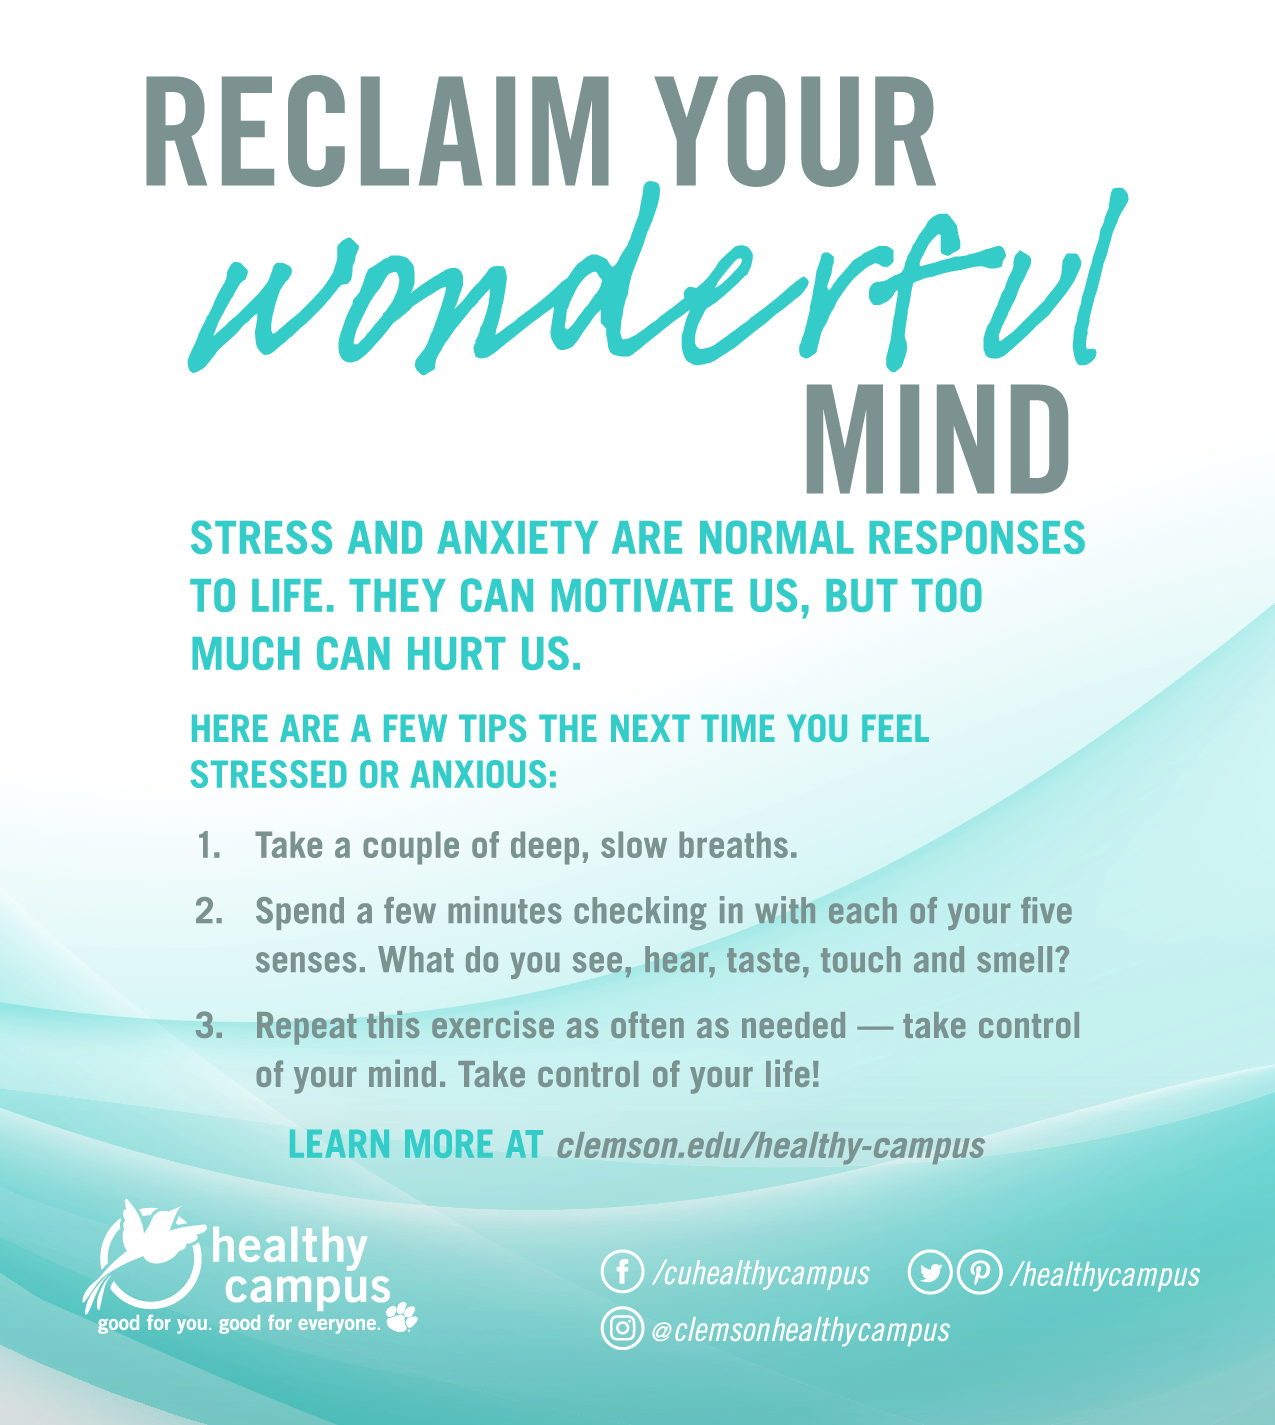 Reclaim Your Wonderful Mind